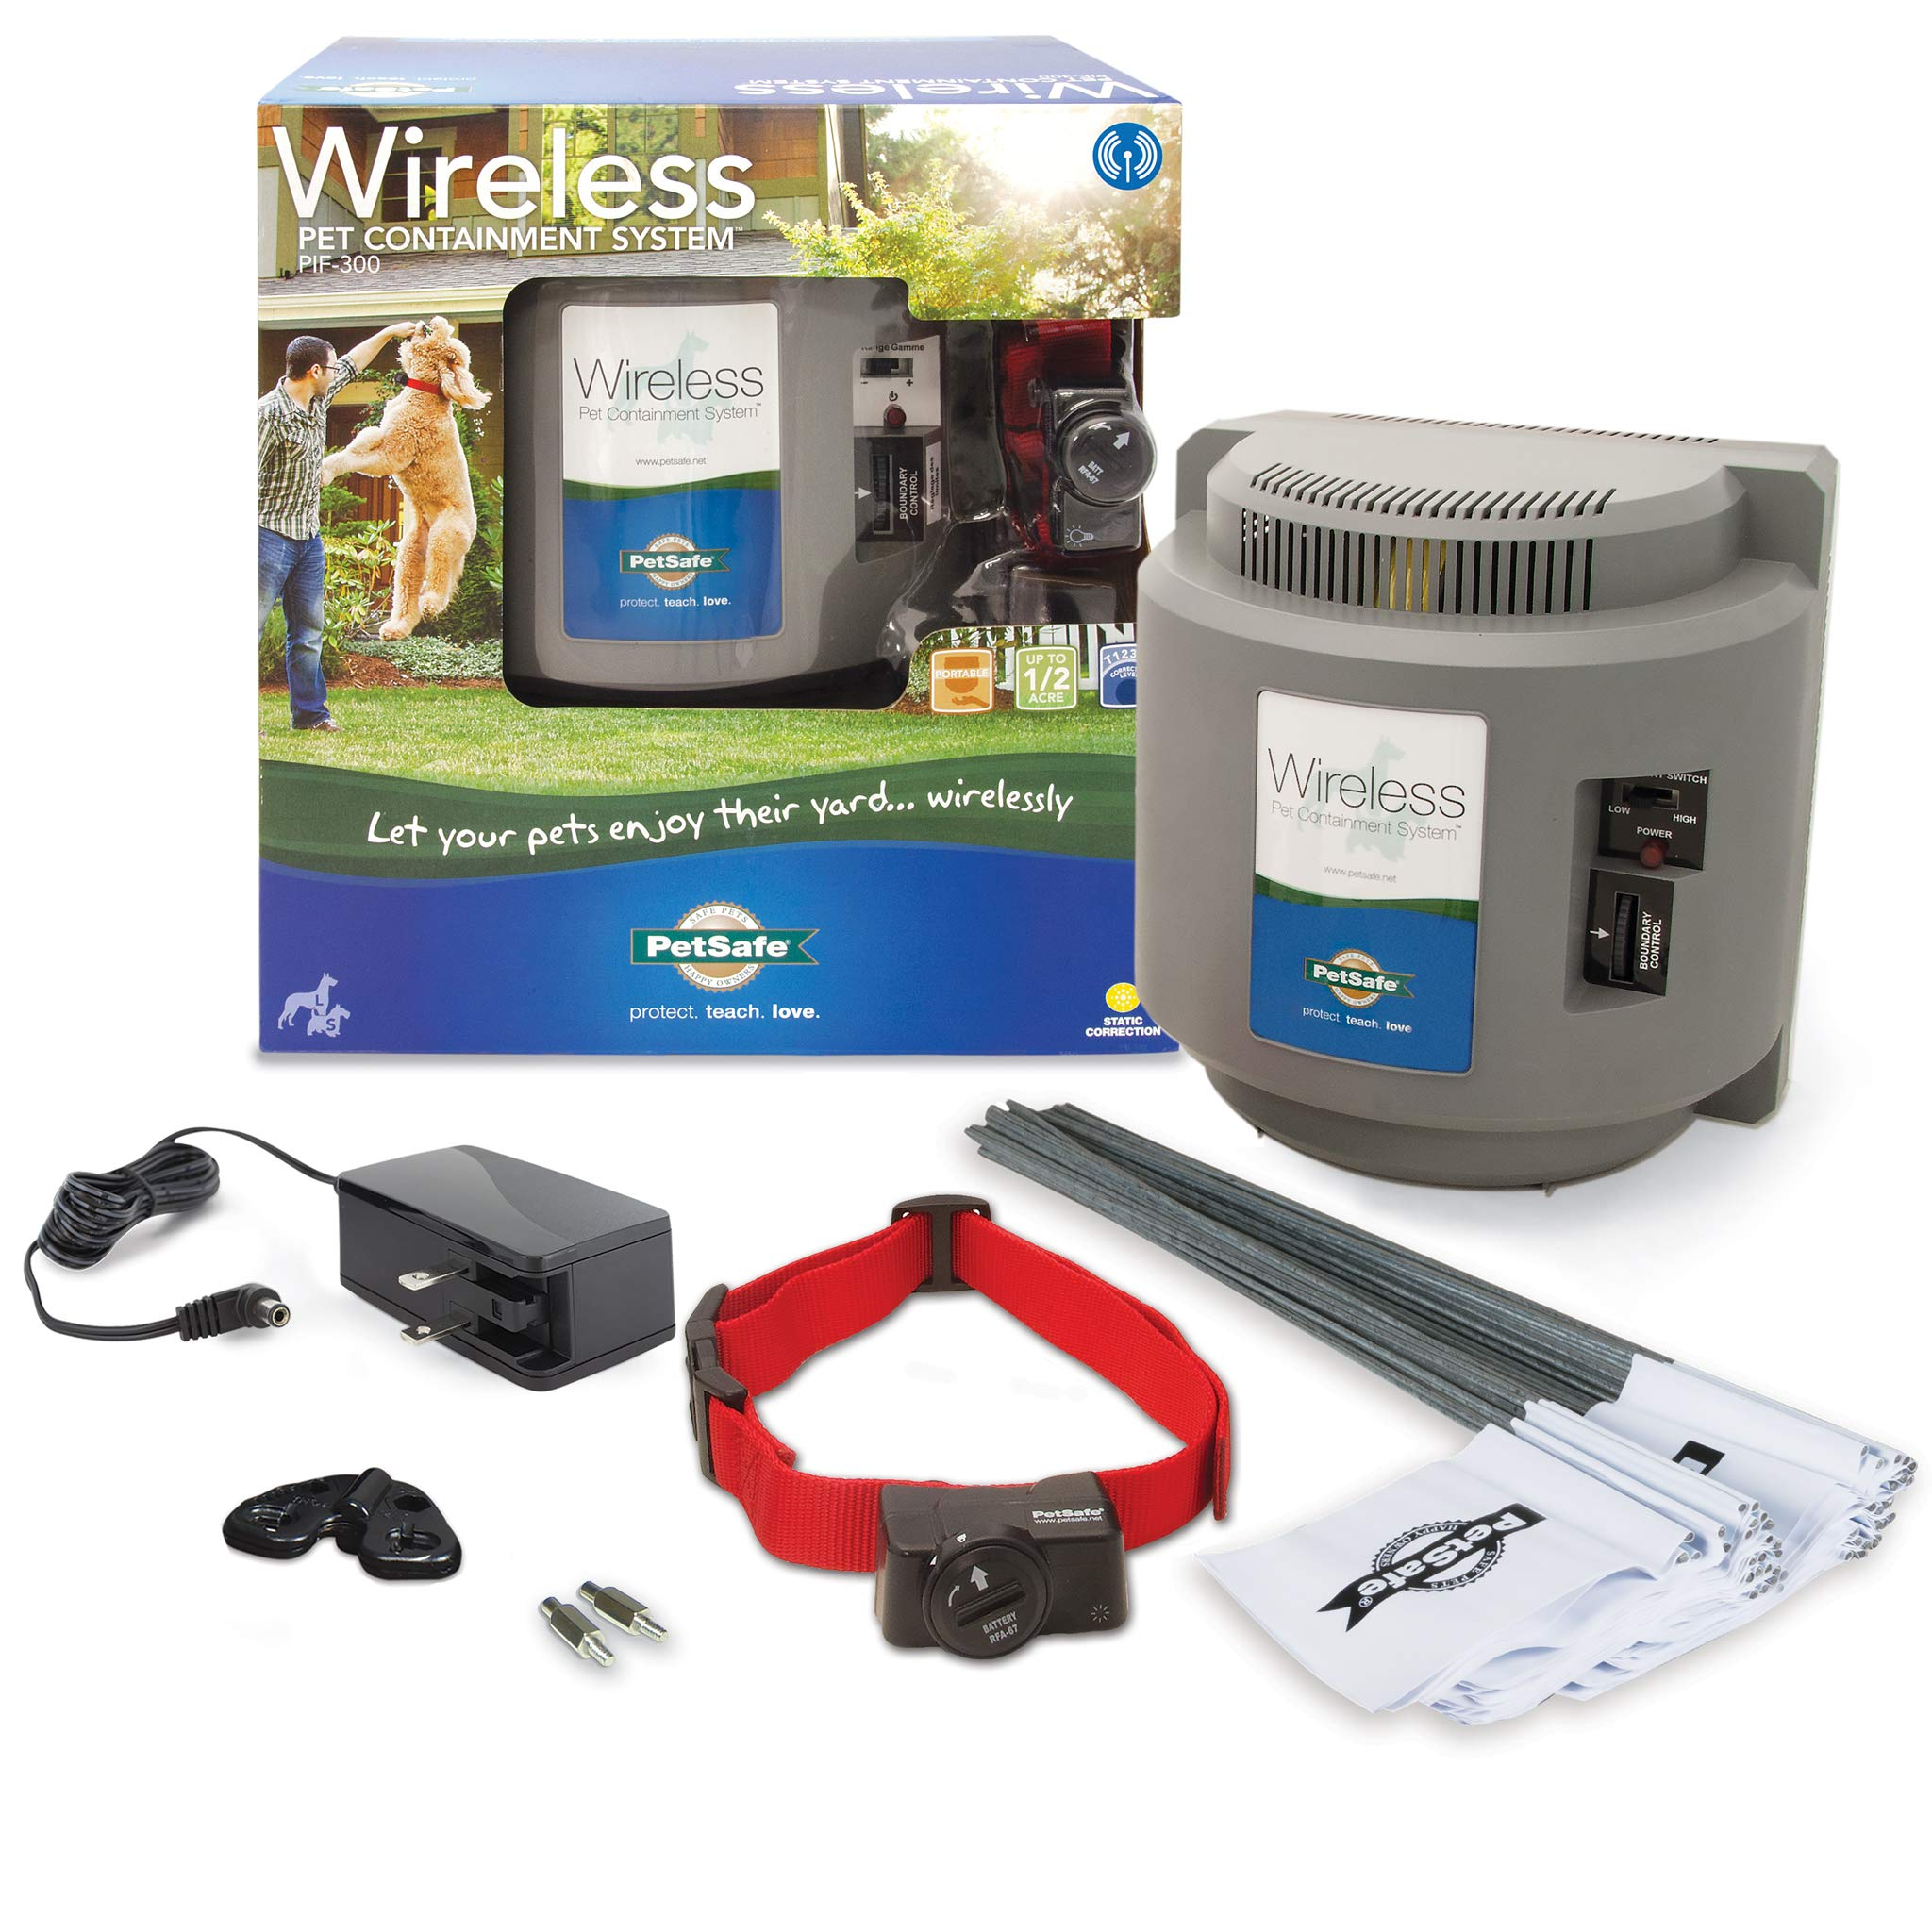 PetSafe Wireless Dog and Cat Containment System - from the Parent Company of INVISIBLE FENCE Brand - Above Ground Electric Pet Fence by PetSafe